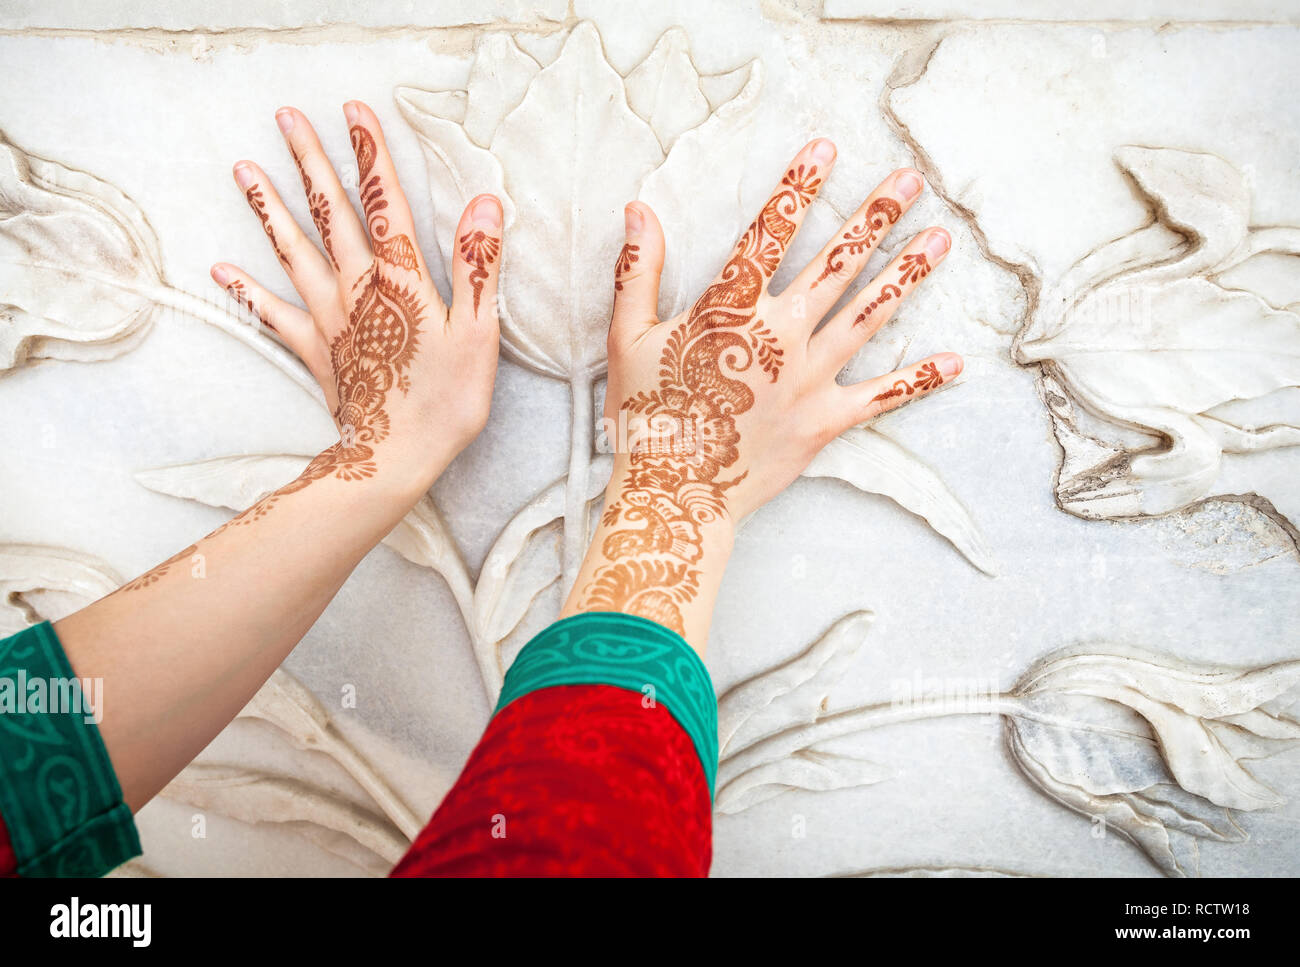 Woman in red Indian costume touching white marble wall with floral pattern by hands in henna painting in Taj Mahal in Agra, Uttar Pradesh, India - Stock Image